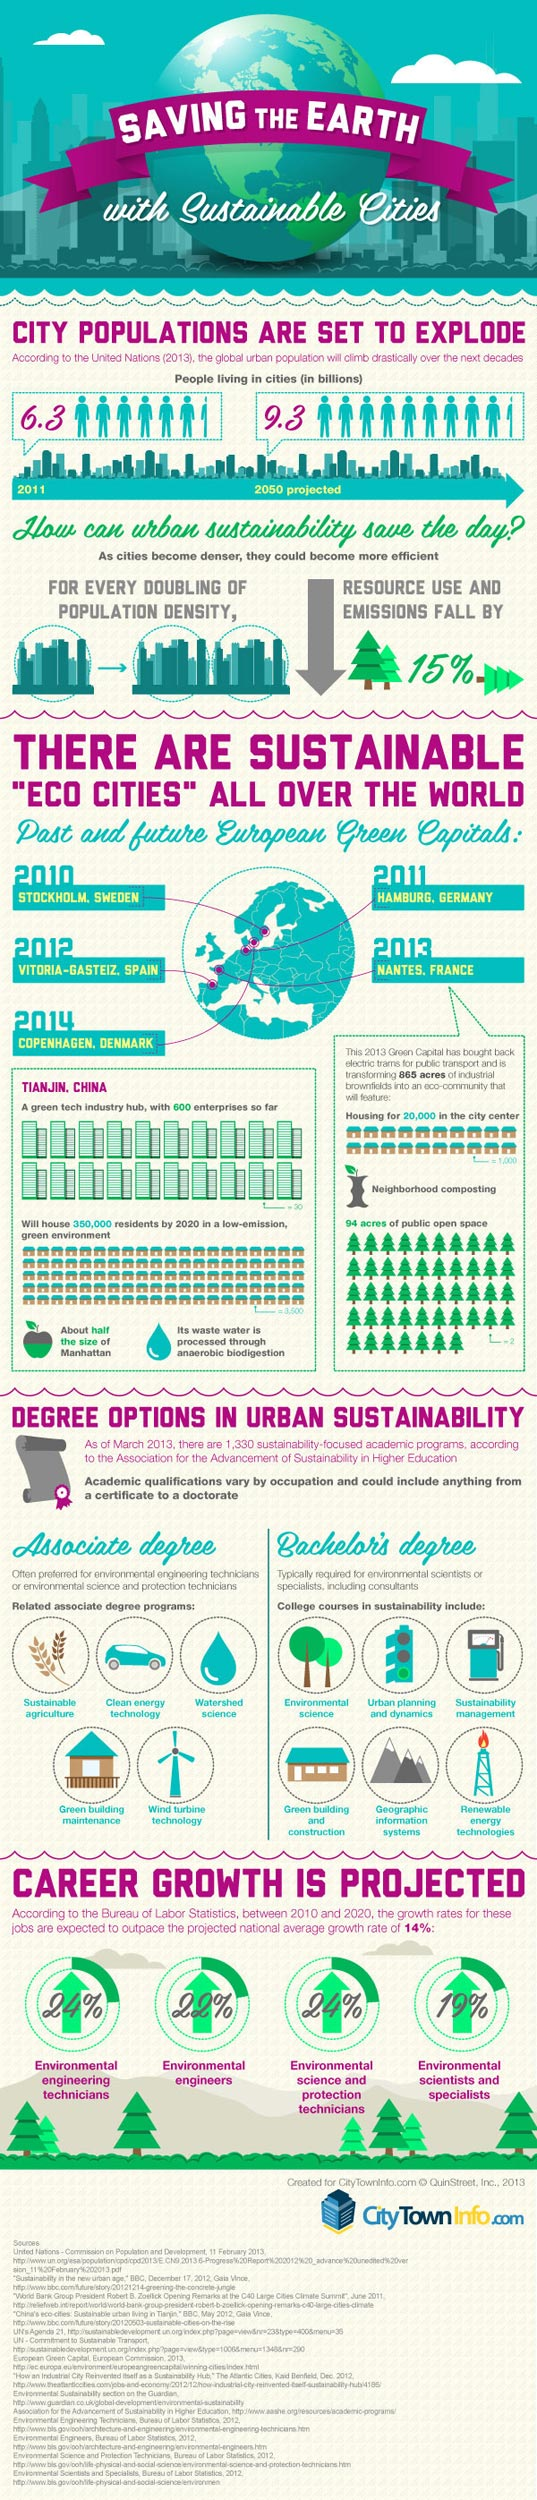 sustainable cities, infographic, CityTownInfo, green design, sustainable design, urban design, urban environment, green cities, green building, sustainable building, infrastructure, urban development, global development